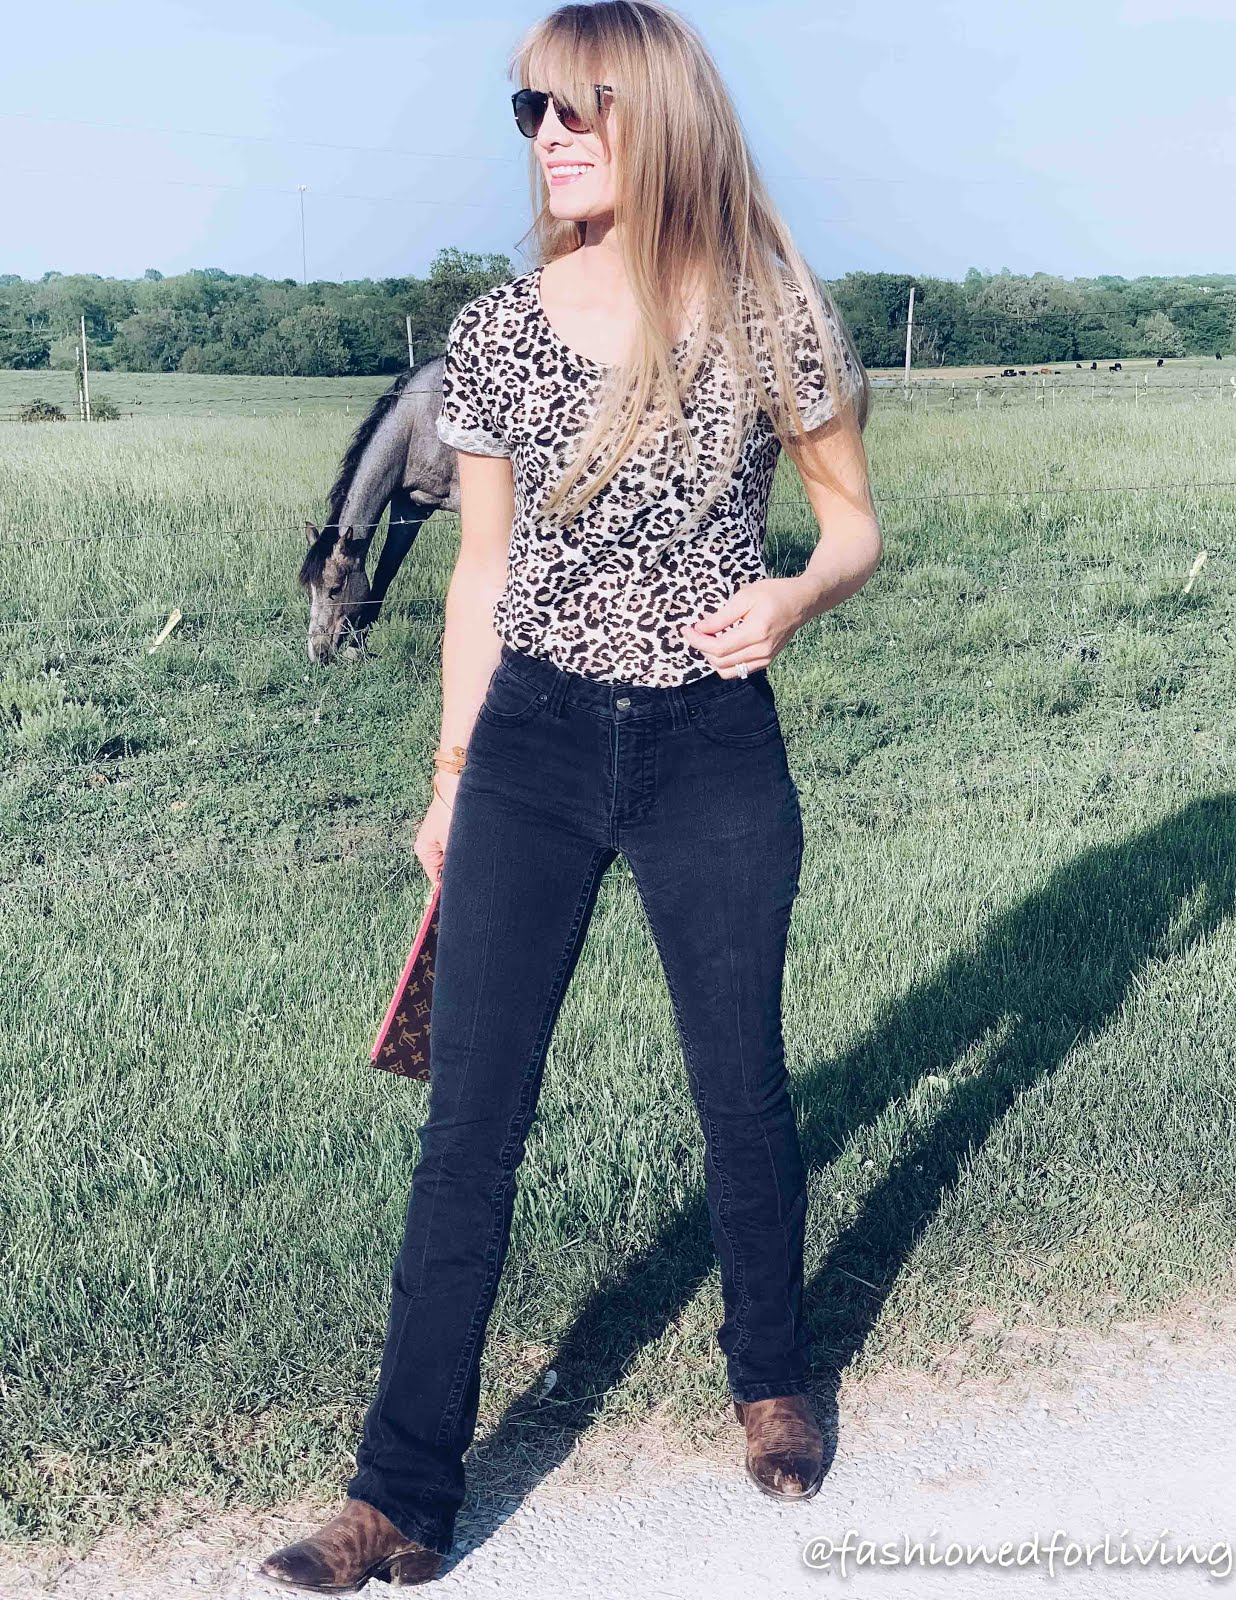 kimes betty jeans outfit with leopard tee. cowgirl boots.